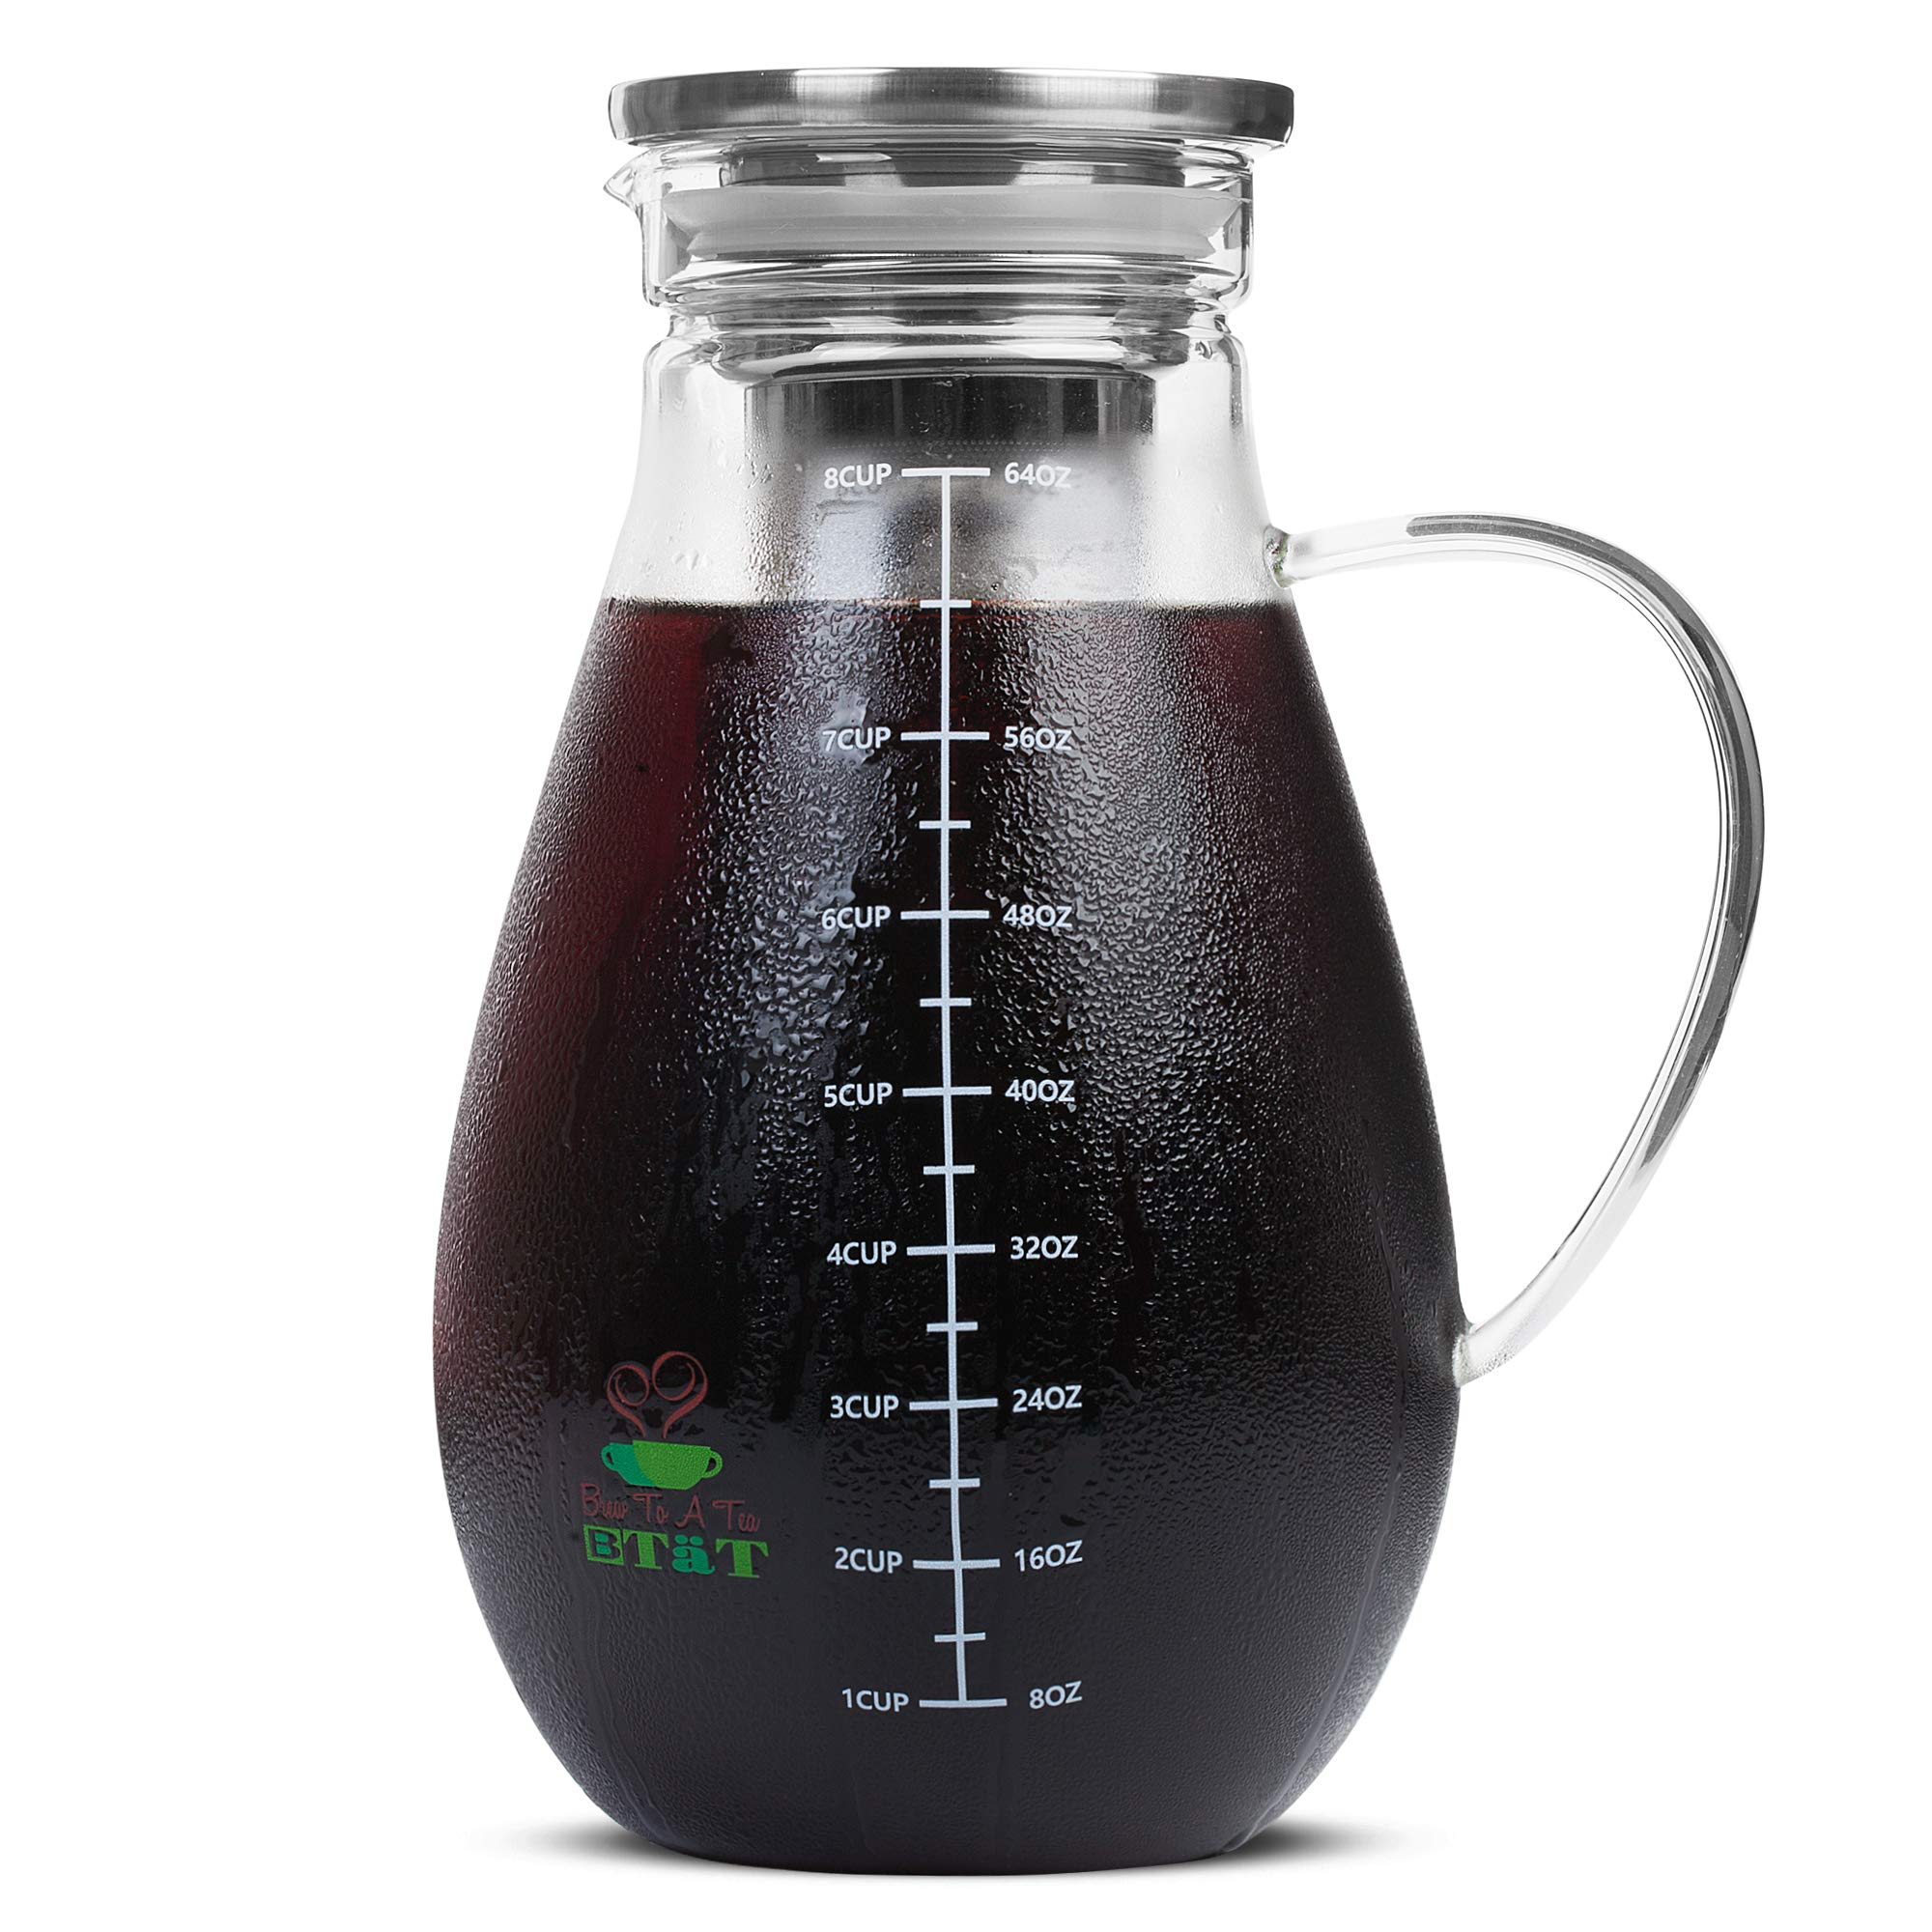 BTäT- Cold Brew Coffee Maker, Iced Coffee Maker, 2 Liter (2 Quart, 64 oz), Iced Tea Maker, Cold Brew Maker, Tea Pitcher, Coffee Accessories, Iced Tea Pitcher, Cold Brew System, Cold Brew Pitcher by Brew To A Tea